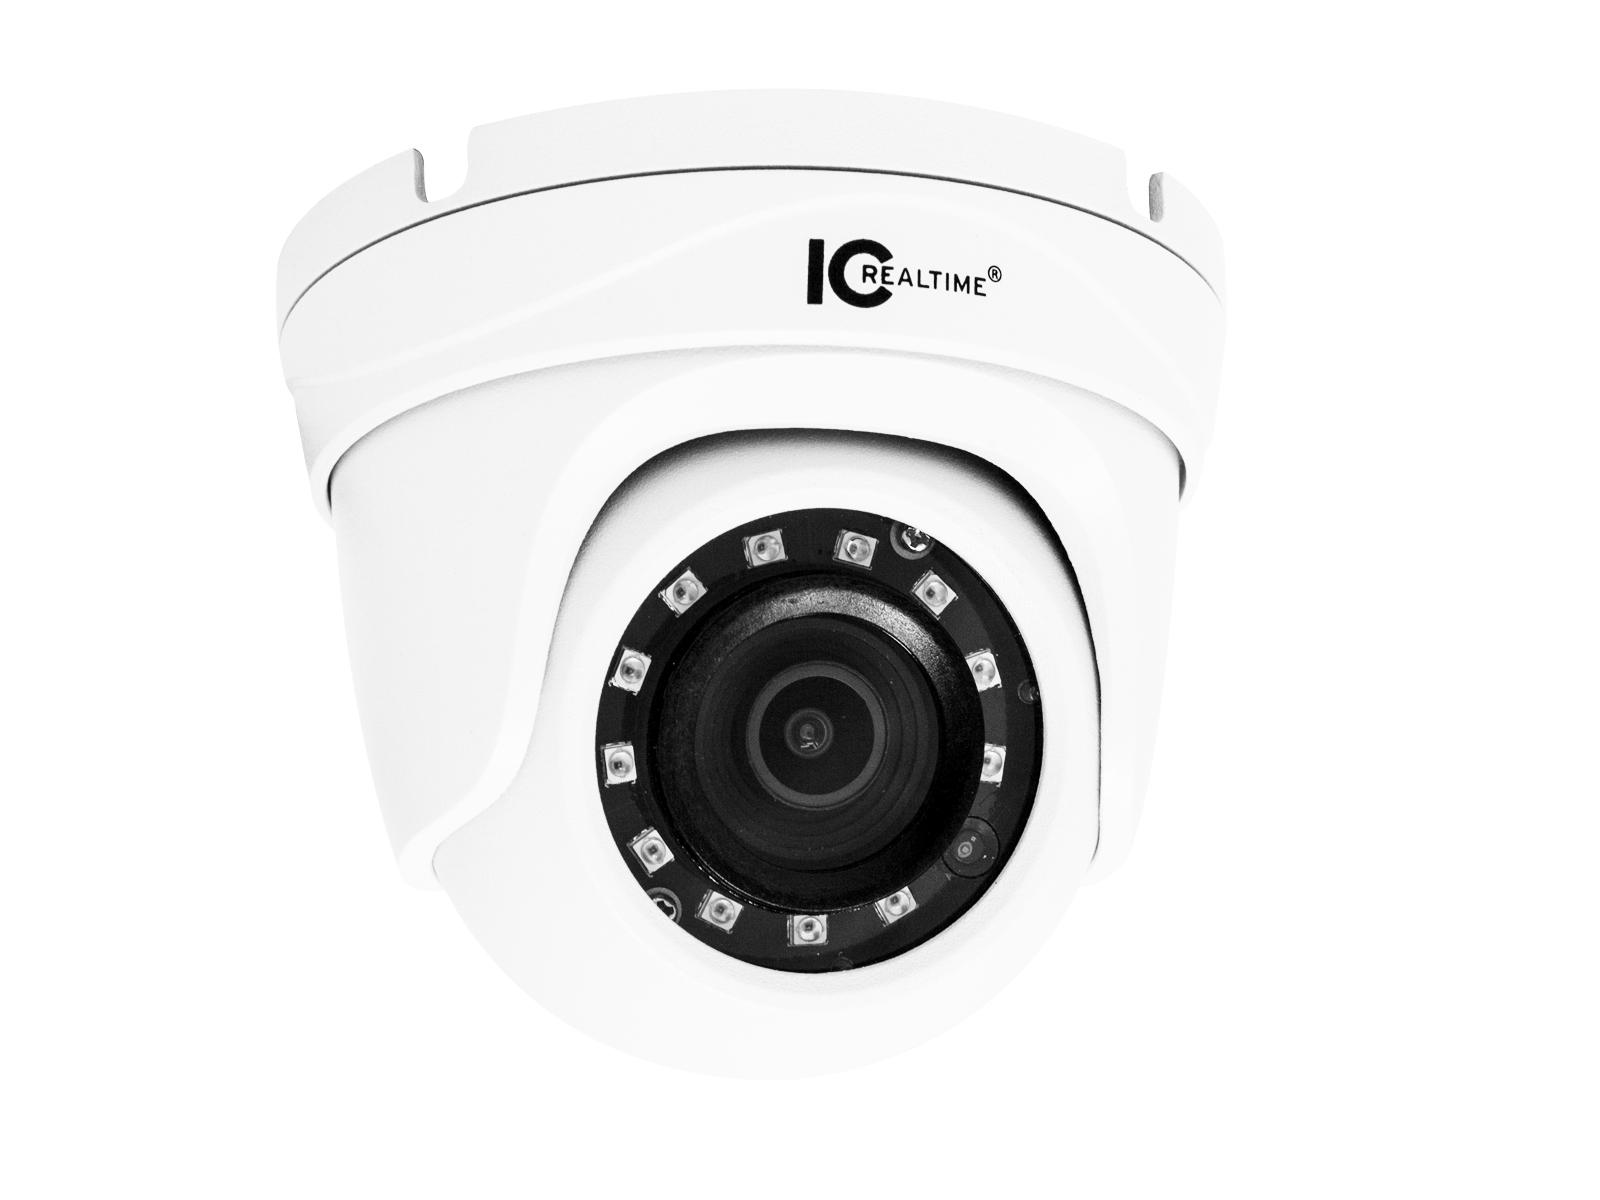 ICRealtime ICR-D4005-IR 4MP IP Indoor/Outdoor Small Size Eyeball Dome Camera with 2.8mm Lens/90ft Smart IR/POE